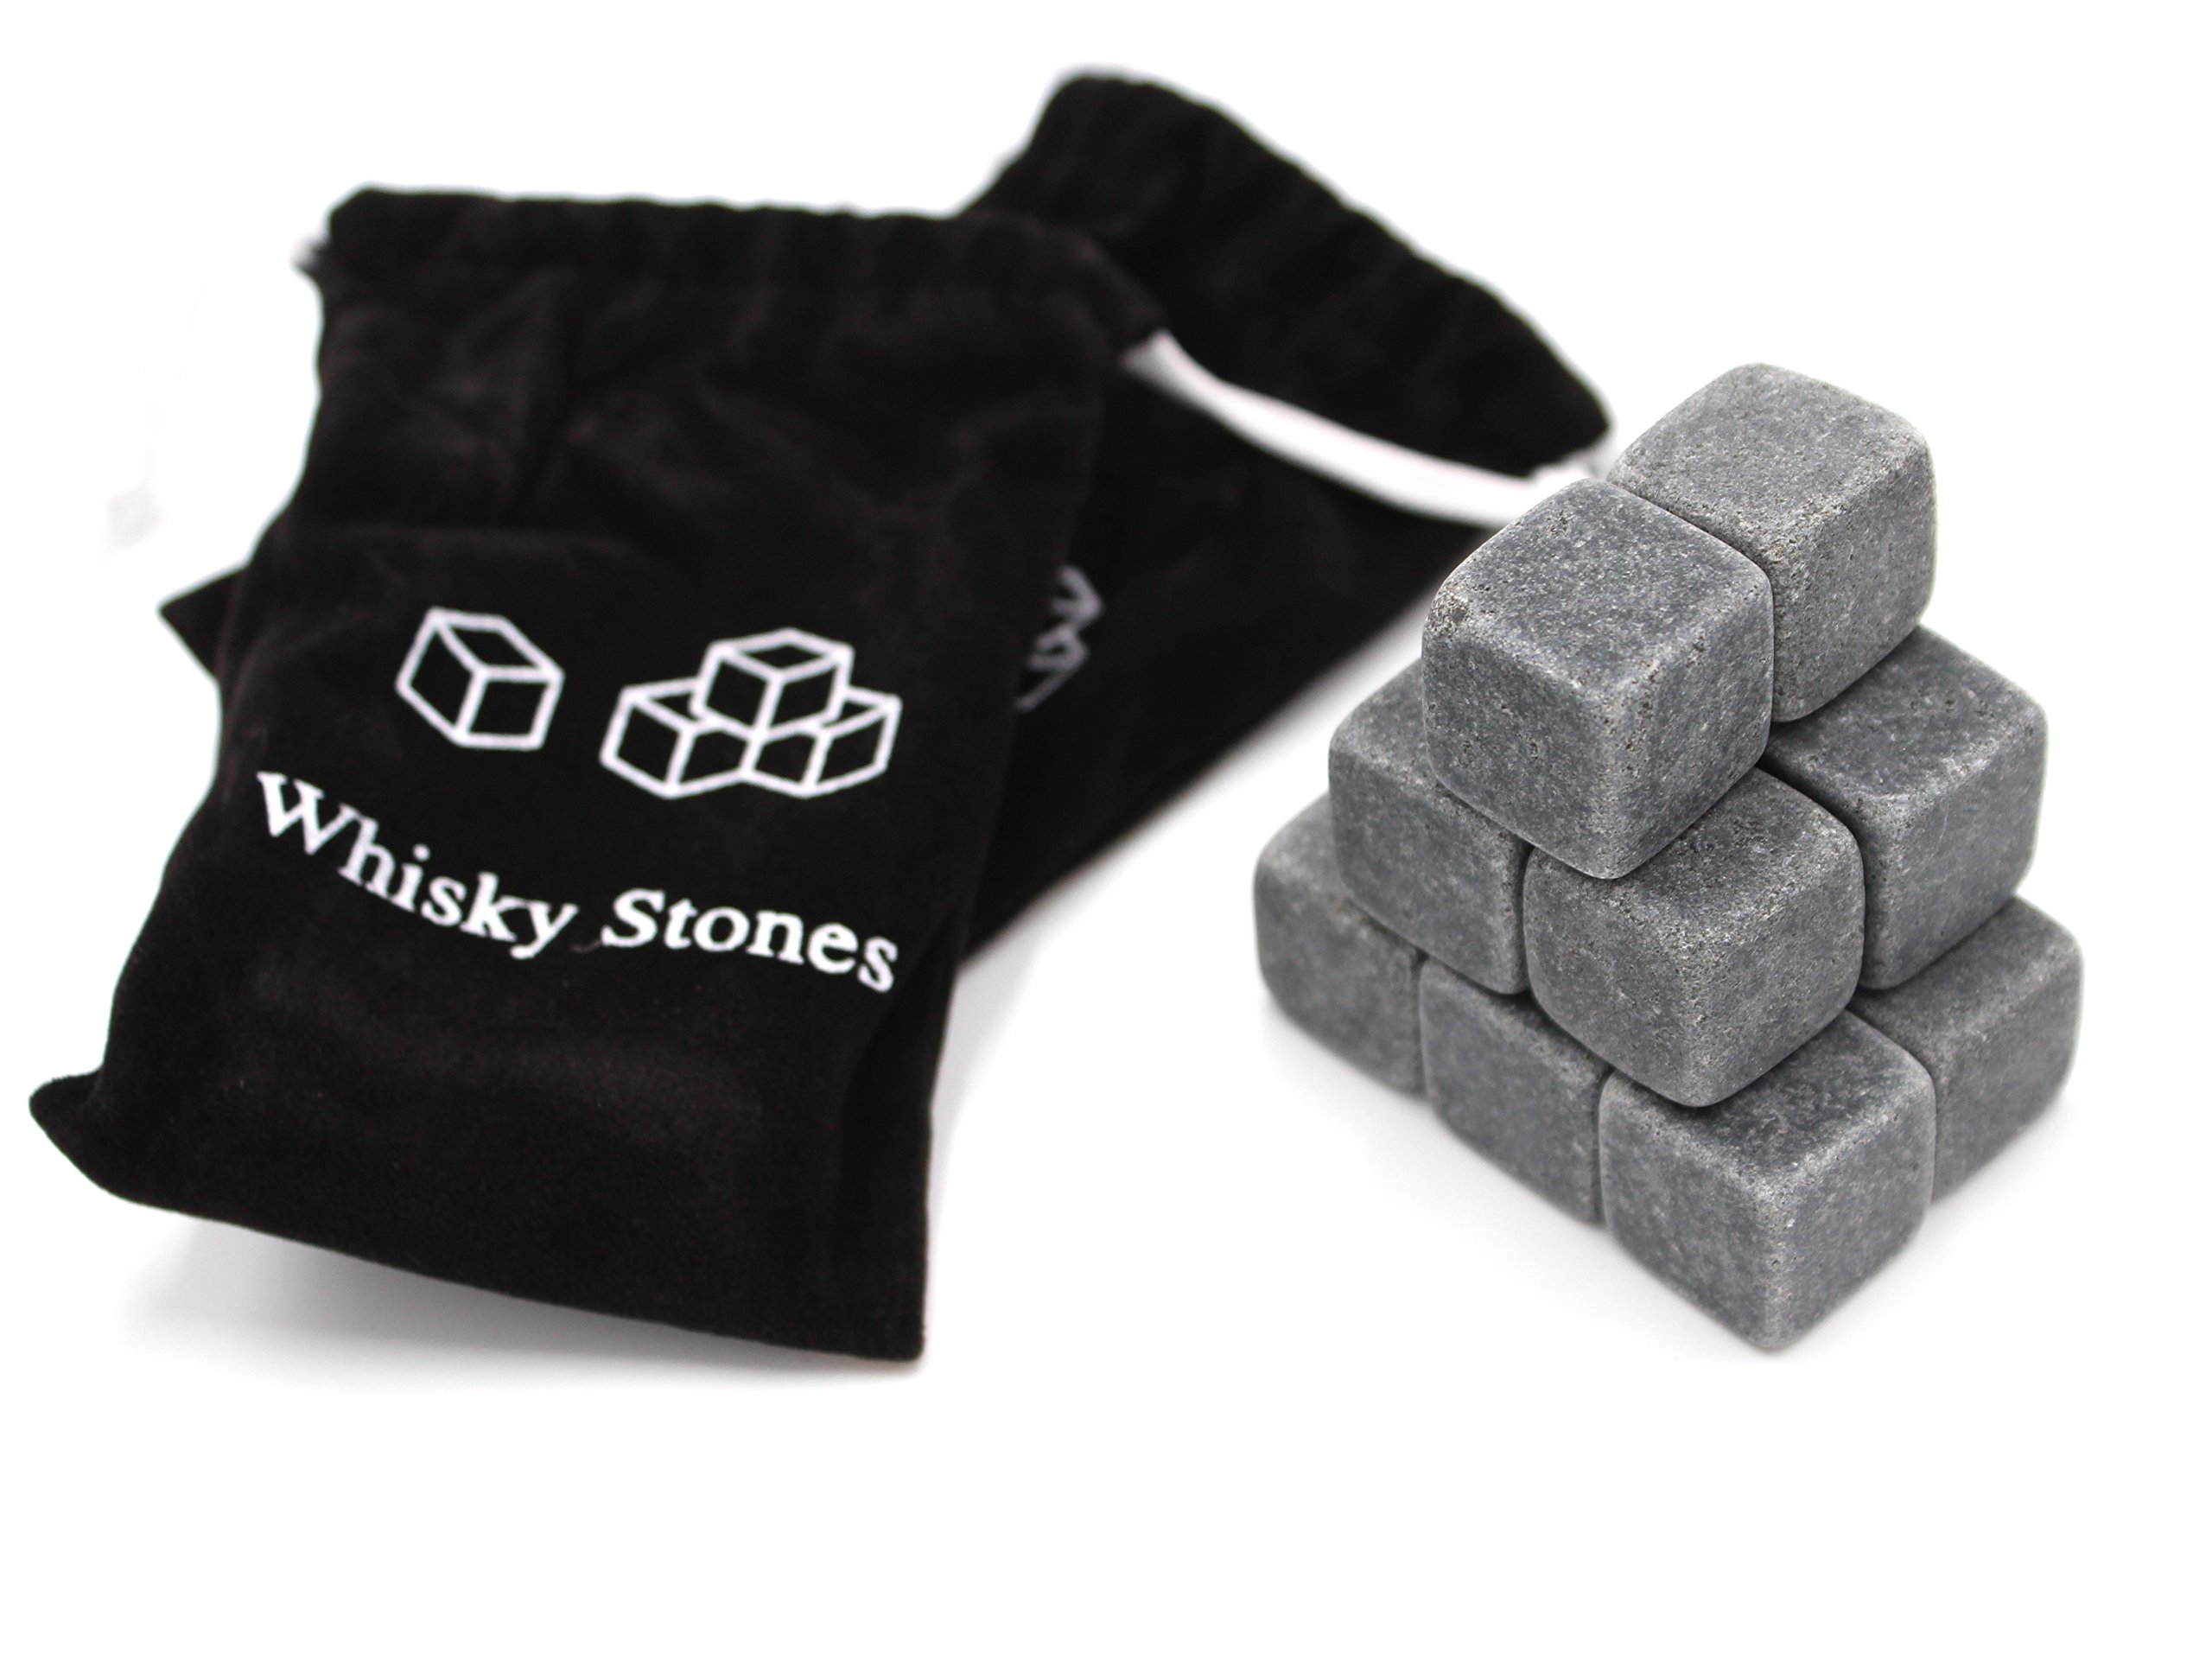 Set of 18 - Pure Soapstone Reusable Chilling Rocks for Whiskey - No Water Dilution & Perfect For Liquor, Wine and Other Beverages - With 2 Velvet Bags Included (Grey Color)